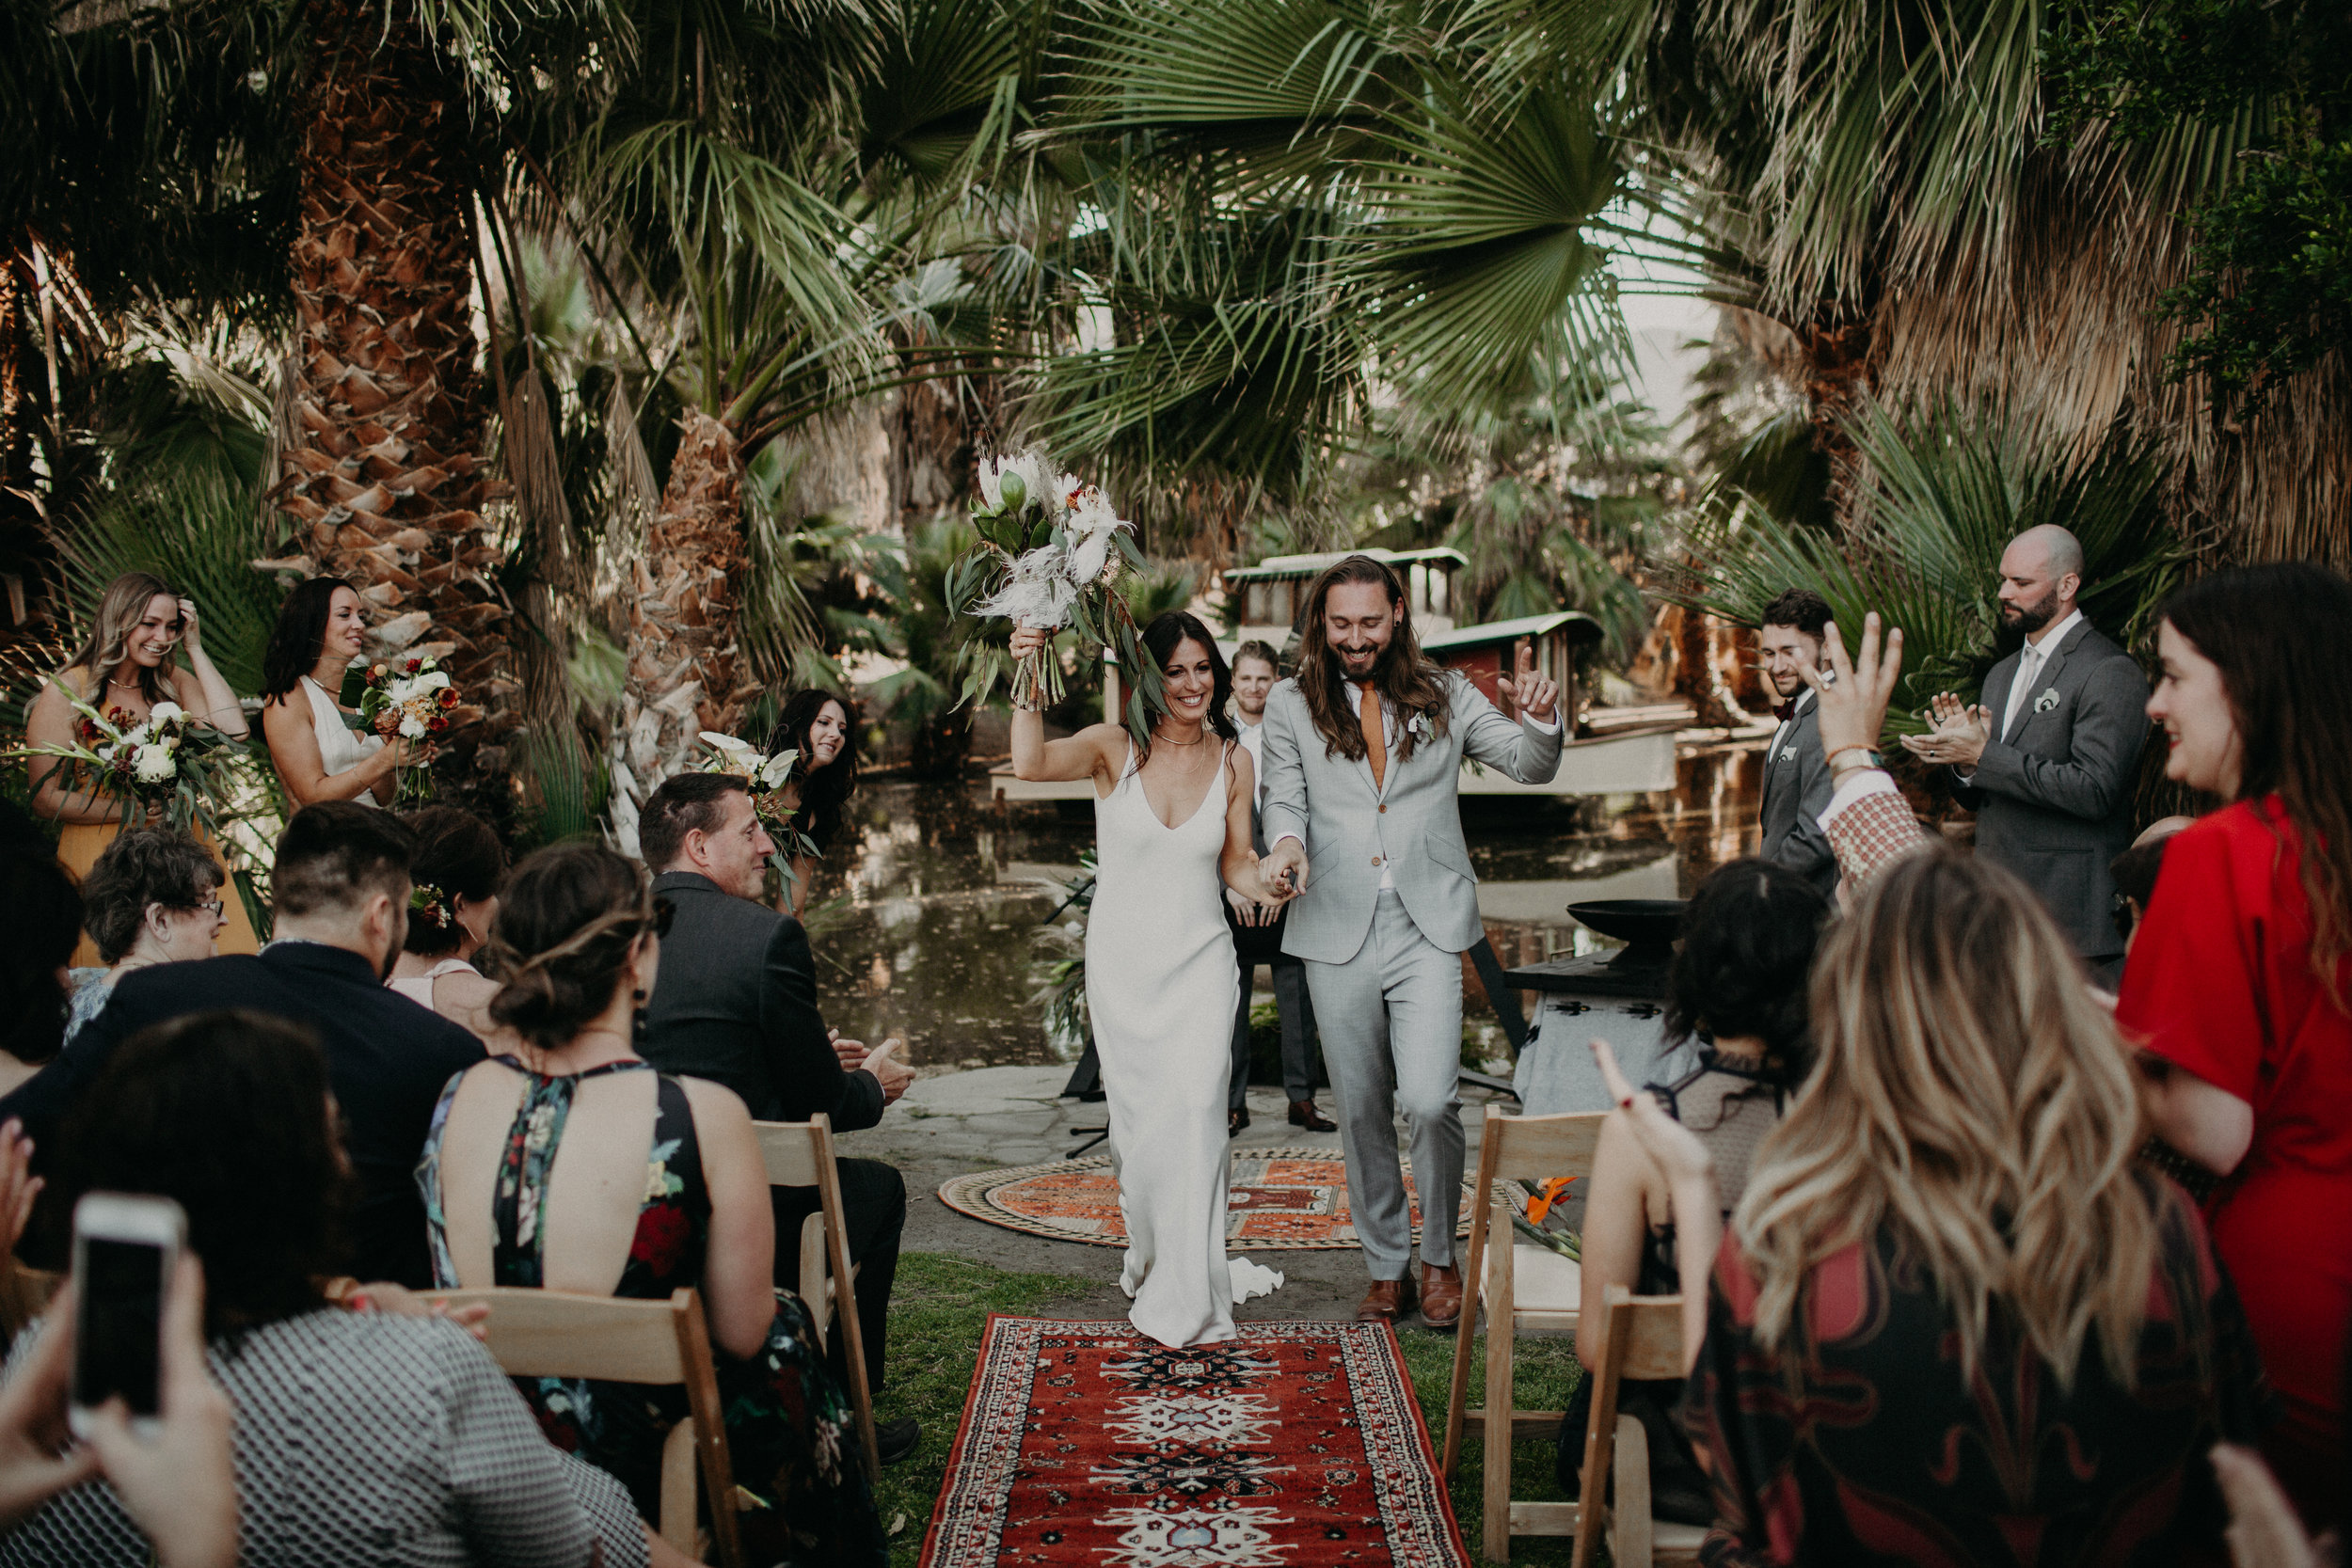 TwentyNine-Palms-Inn-Wedding.jpg